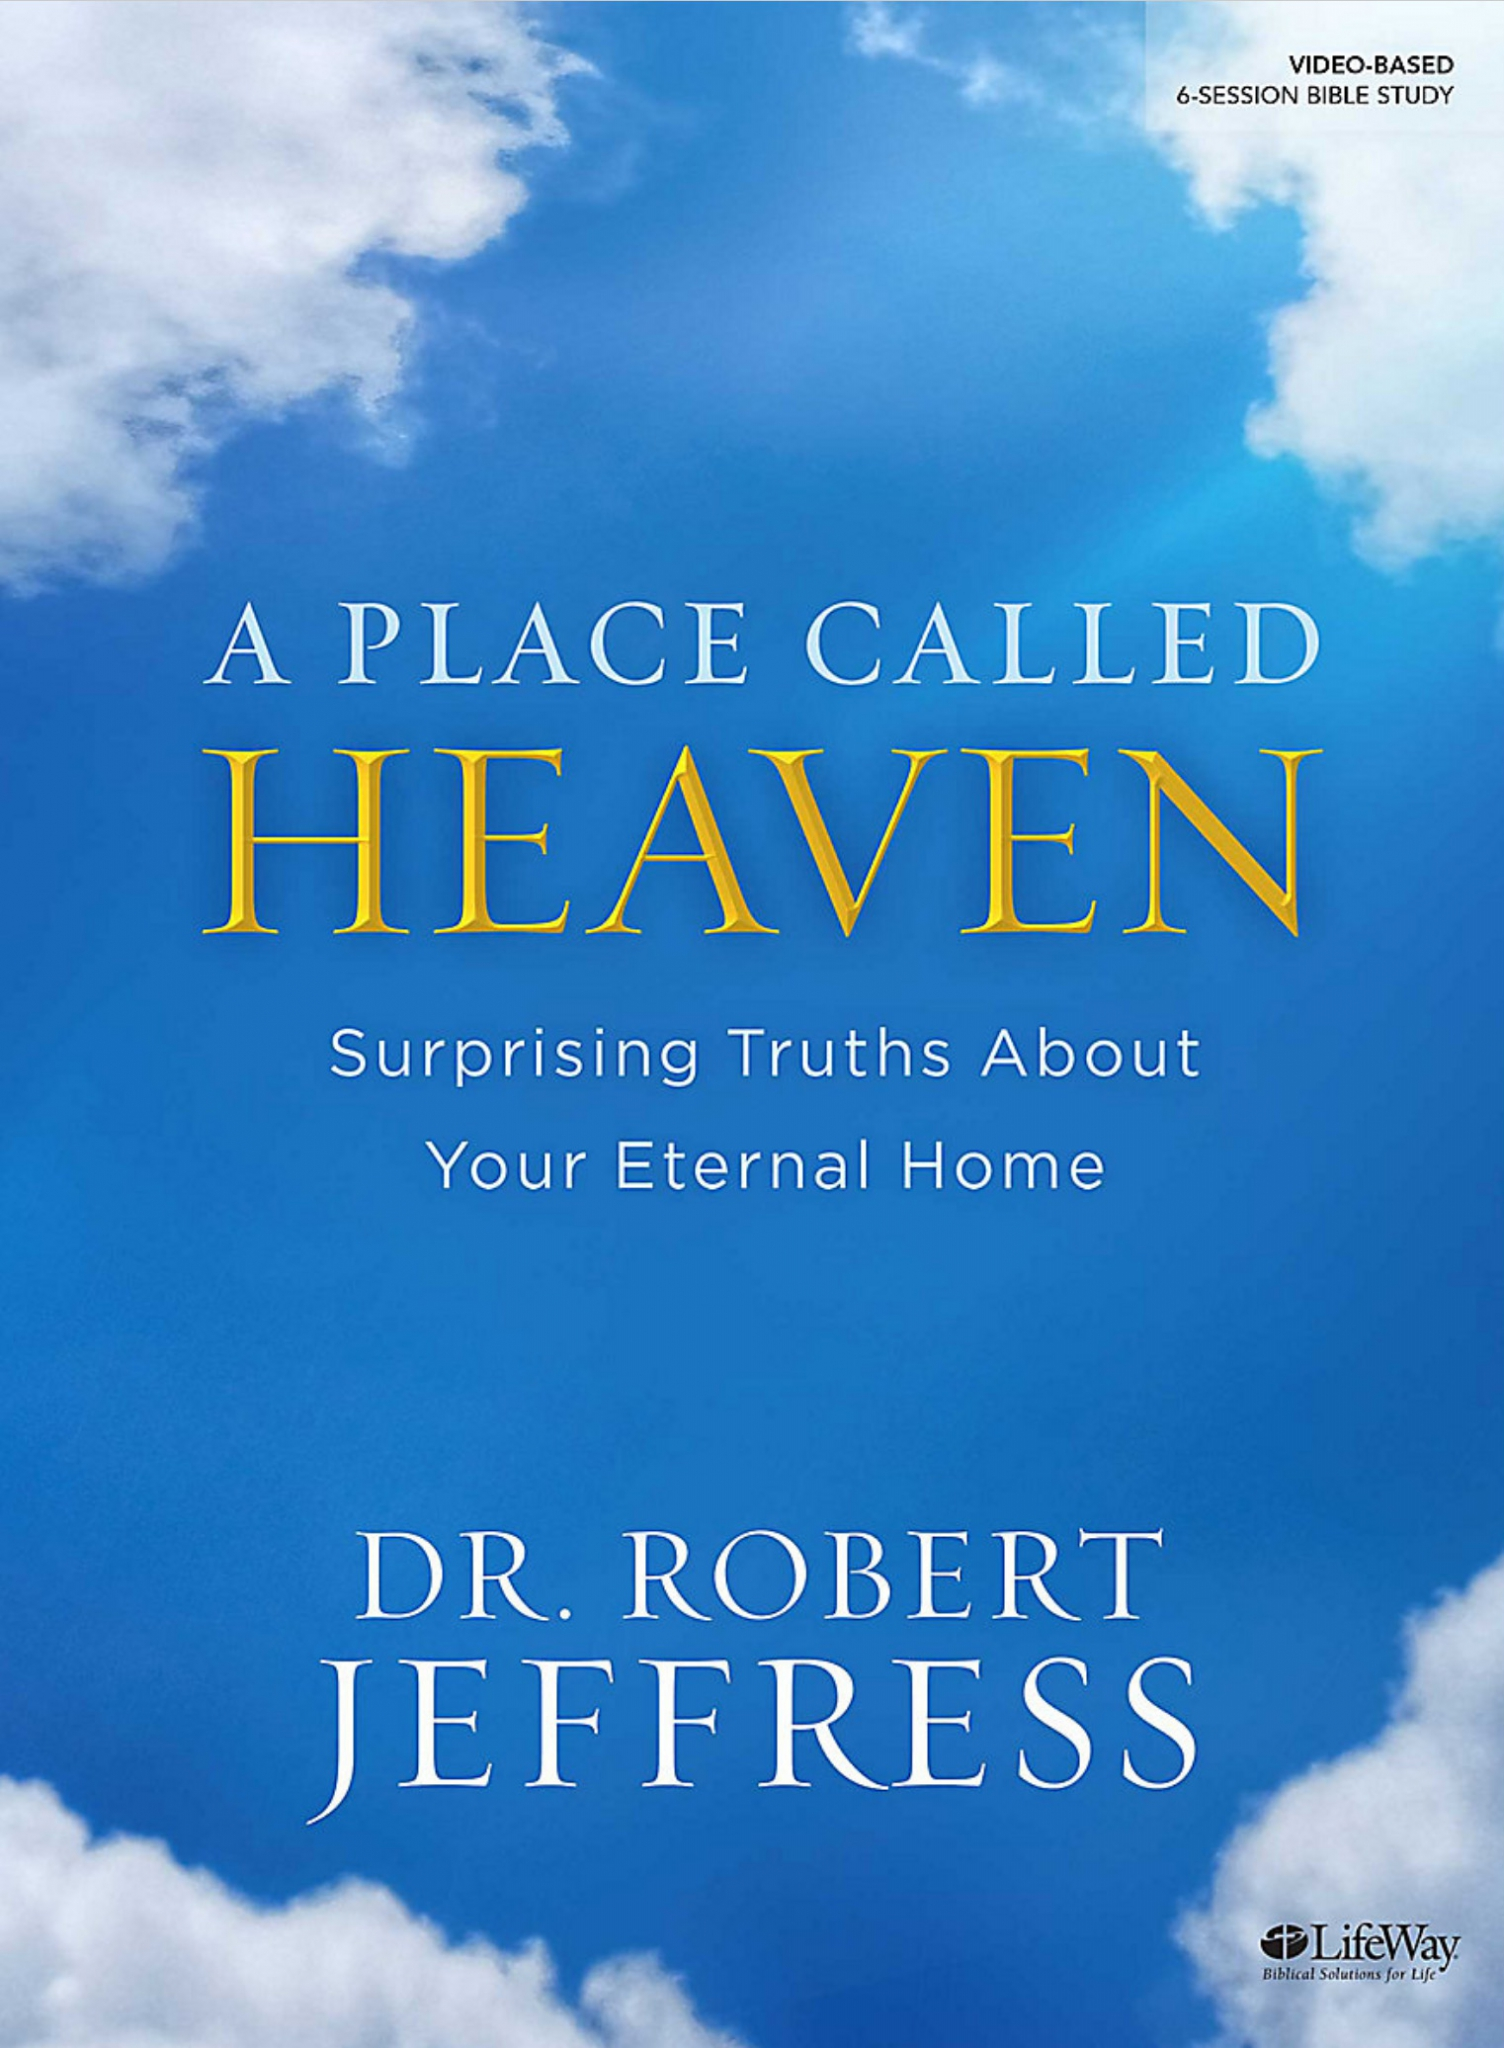 A Place Called Heaven Bible Study